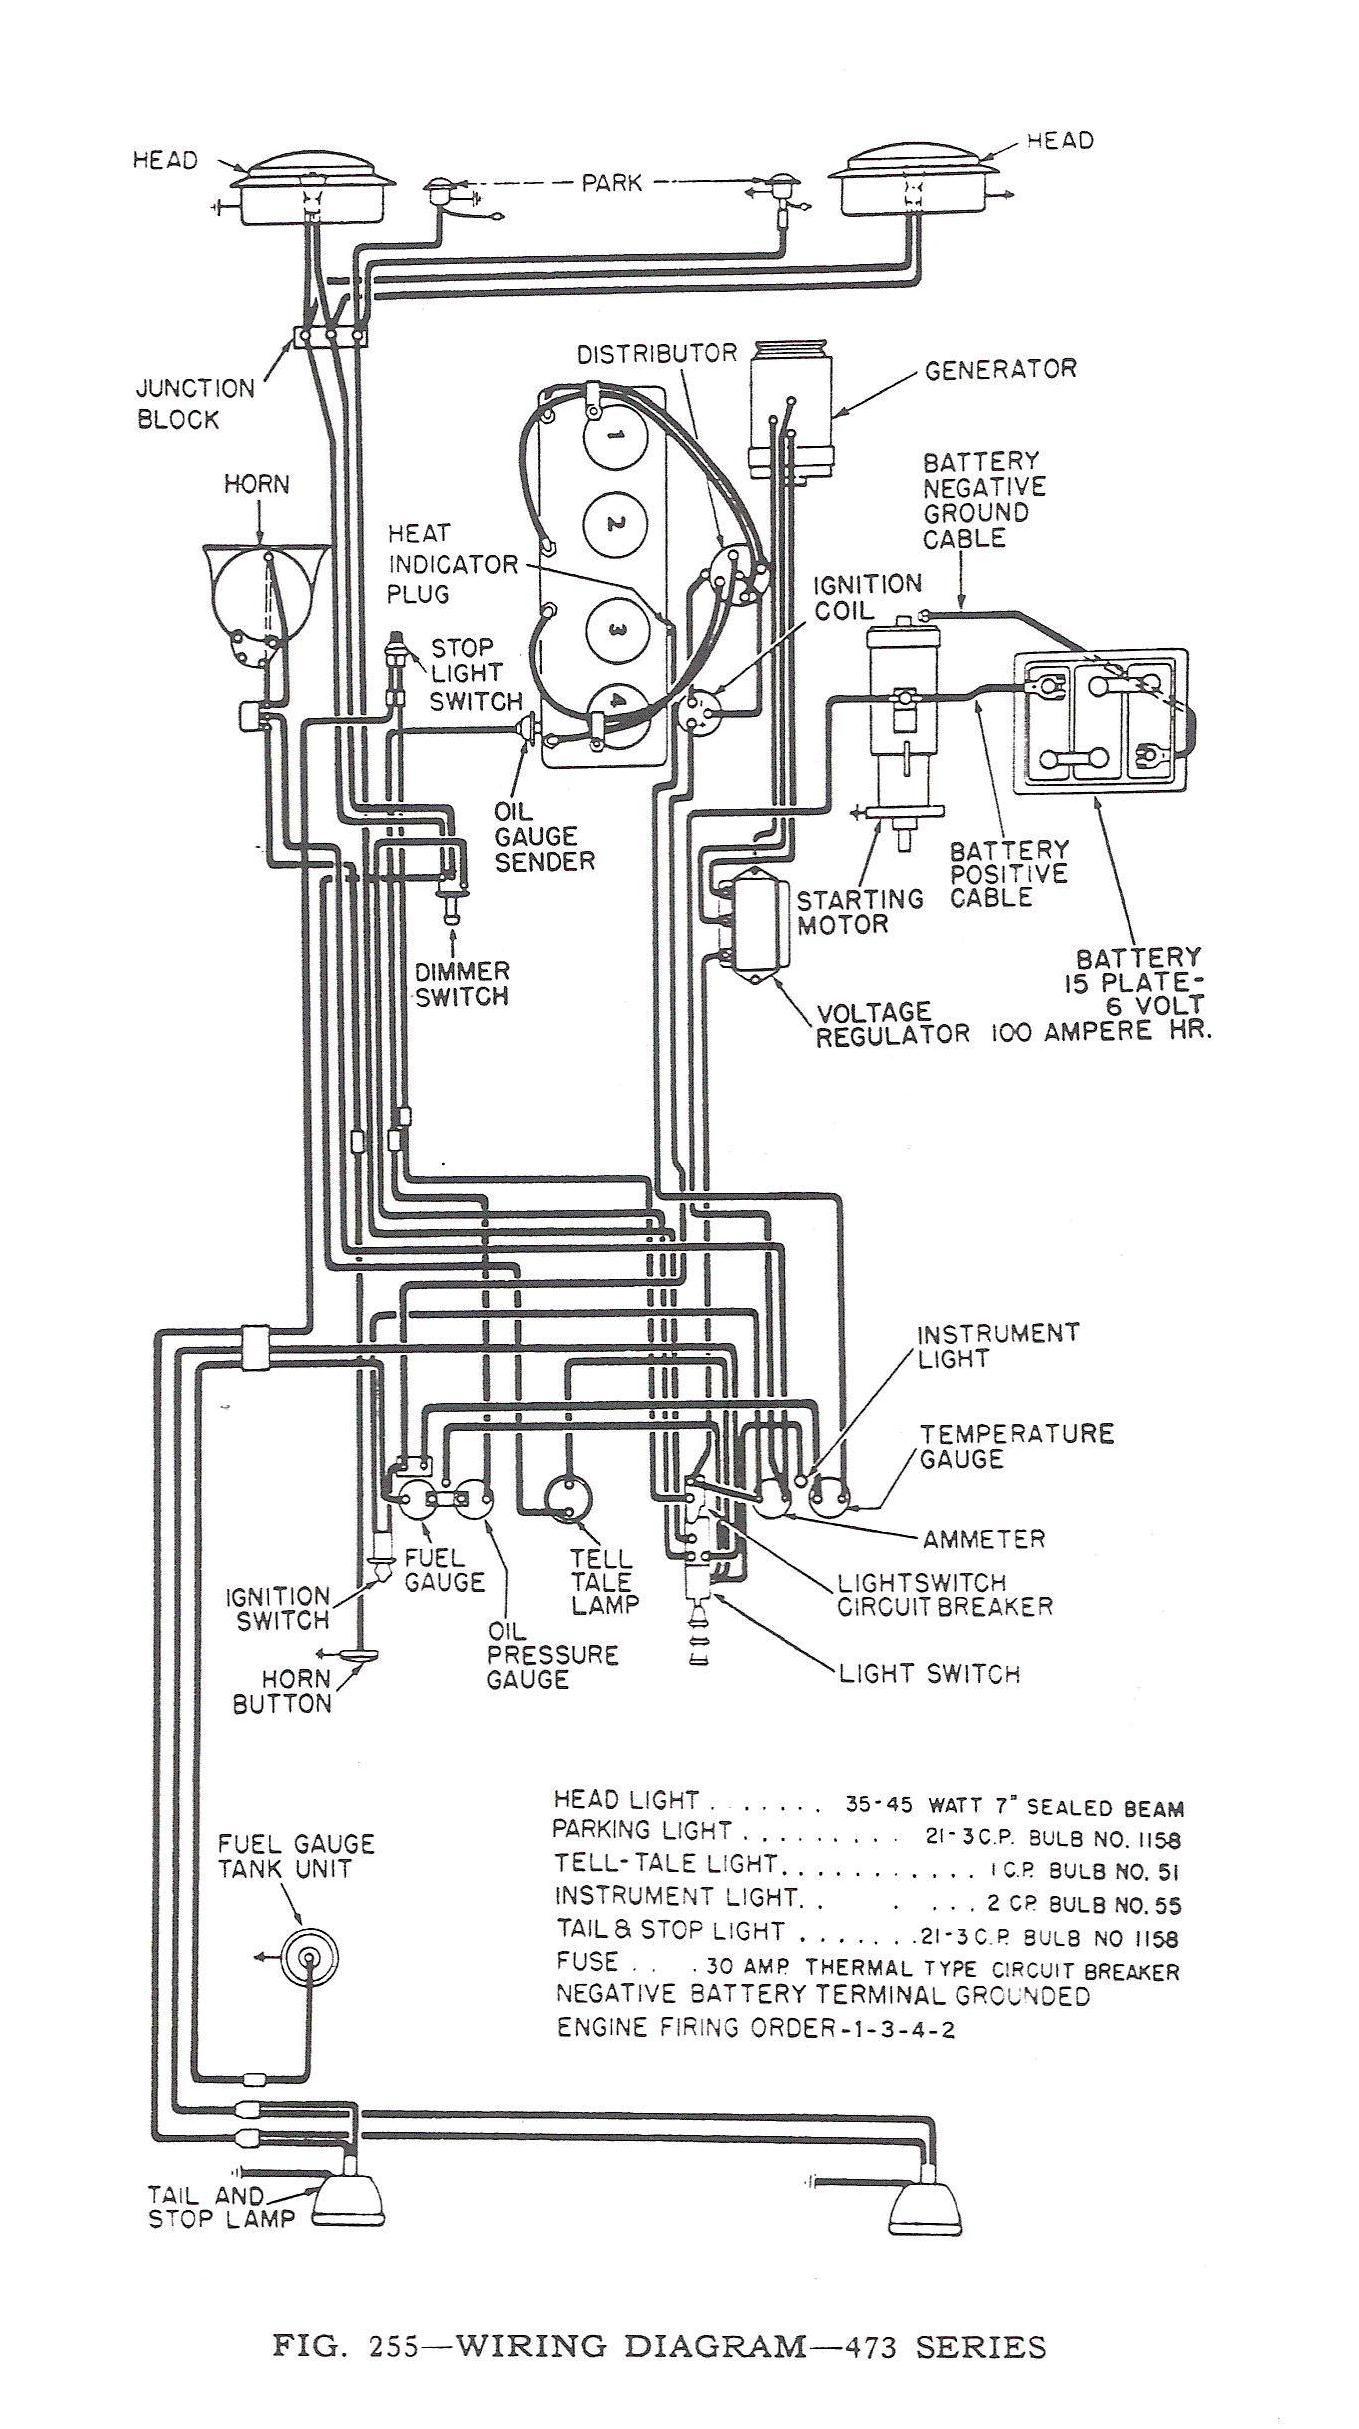 1951 Willys Overland Jeep Wiring Diagram Real Chevy Truck Harness 1952 Series 473 Diagrams Google Search Sathya Rh Pinterest Com